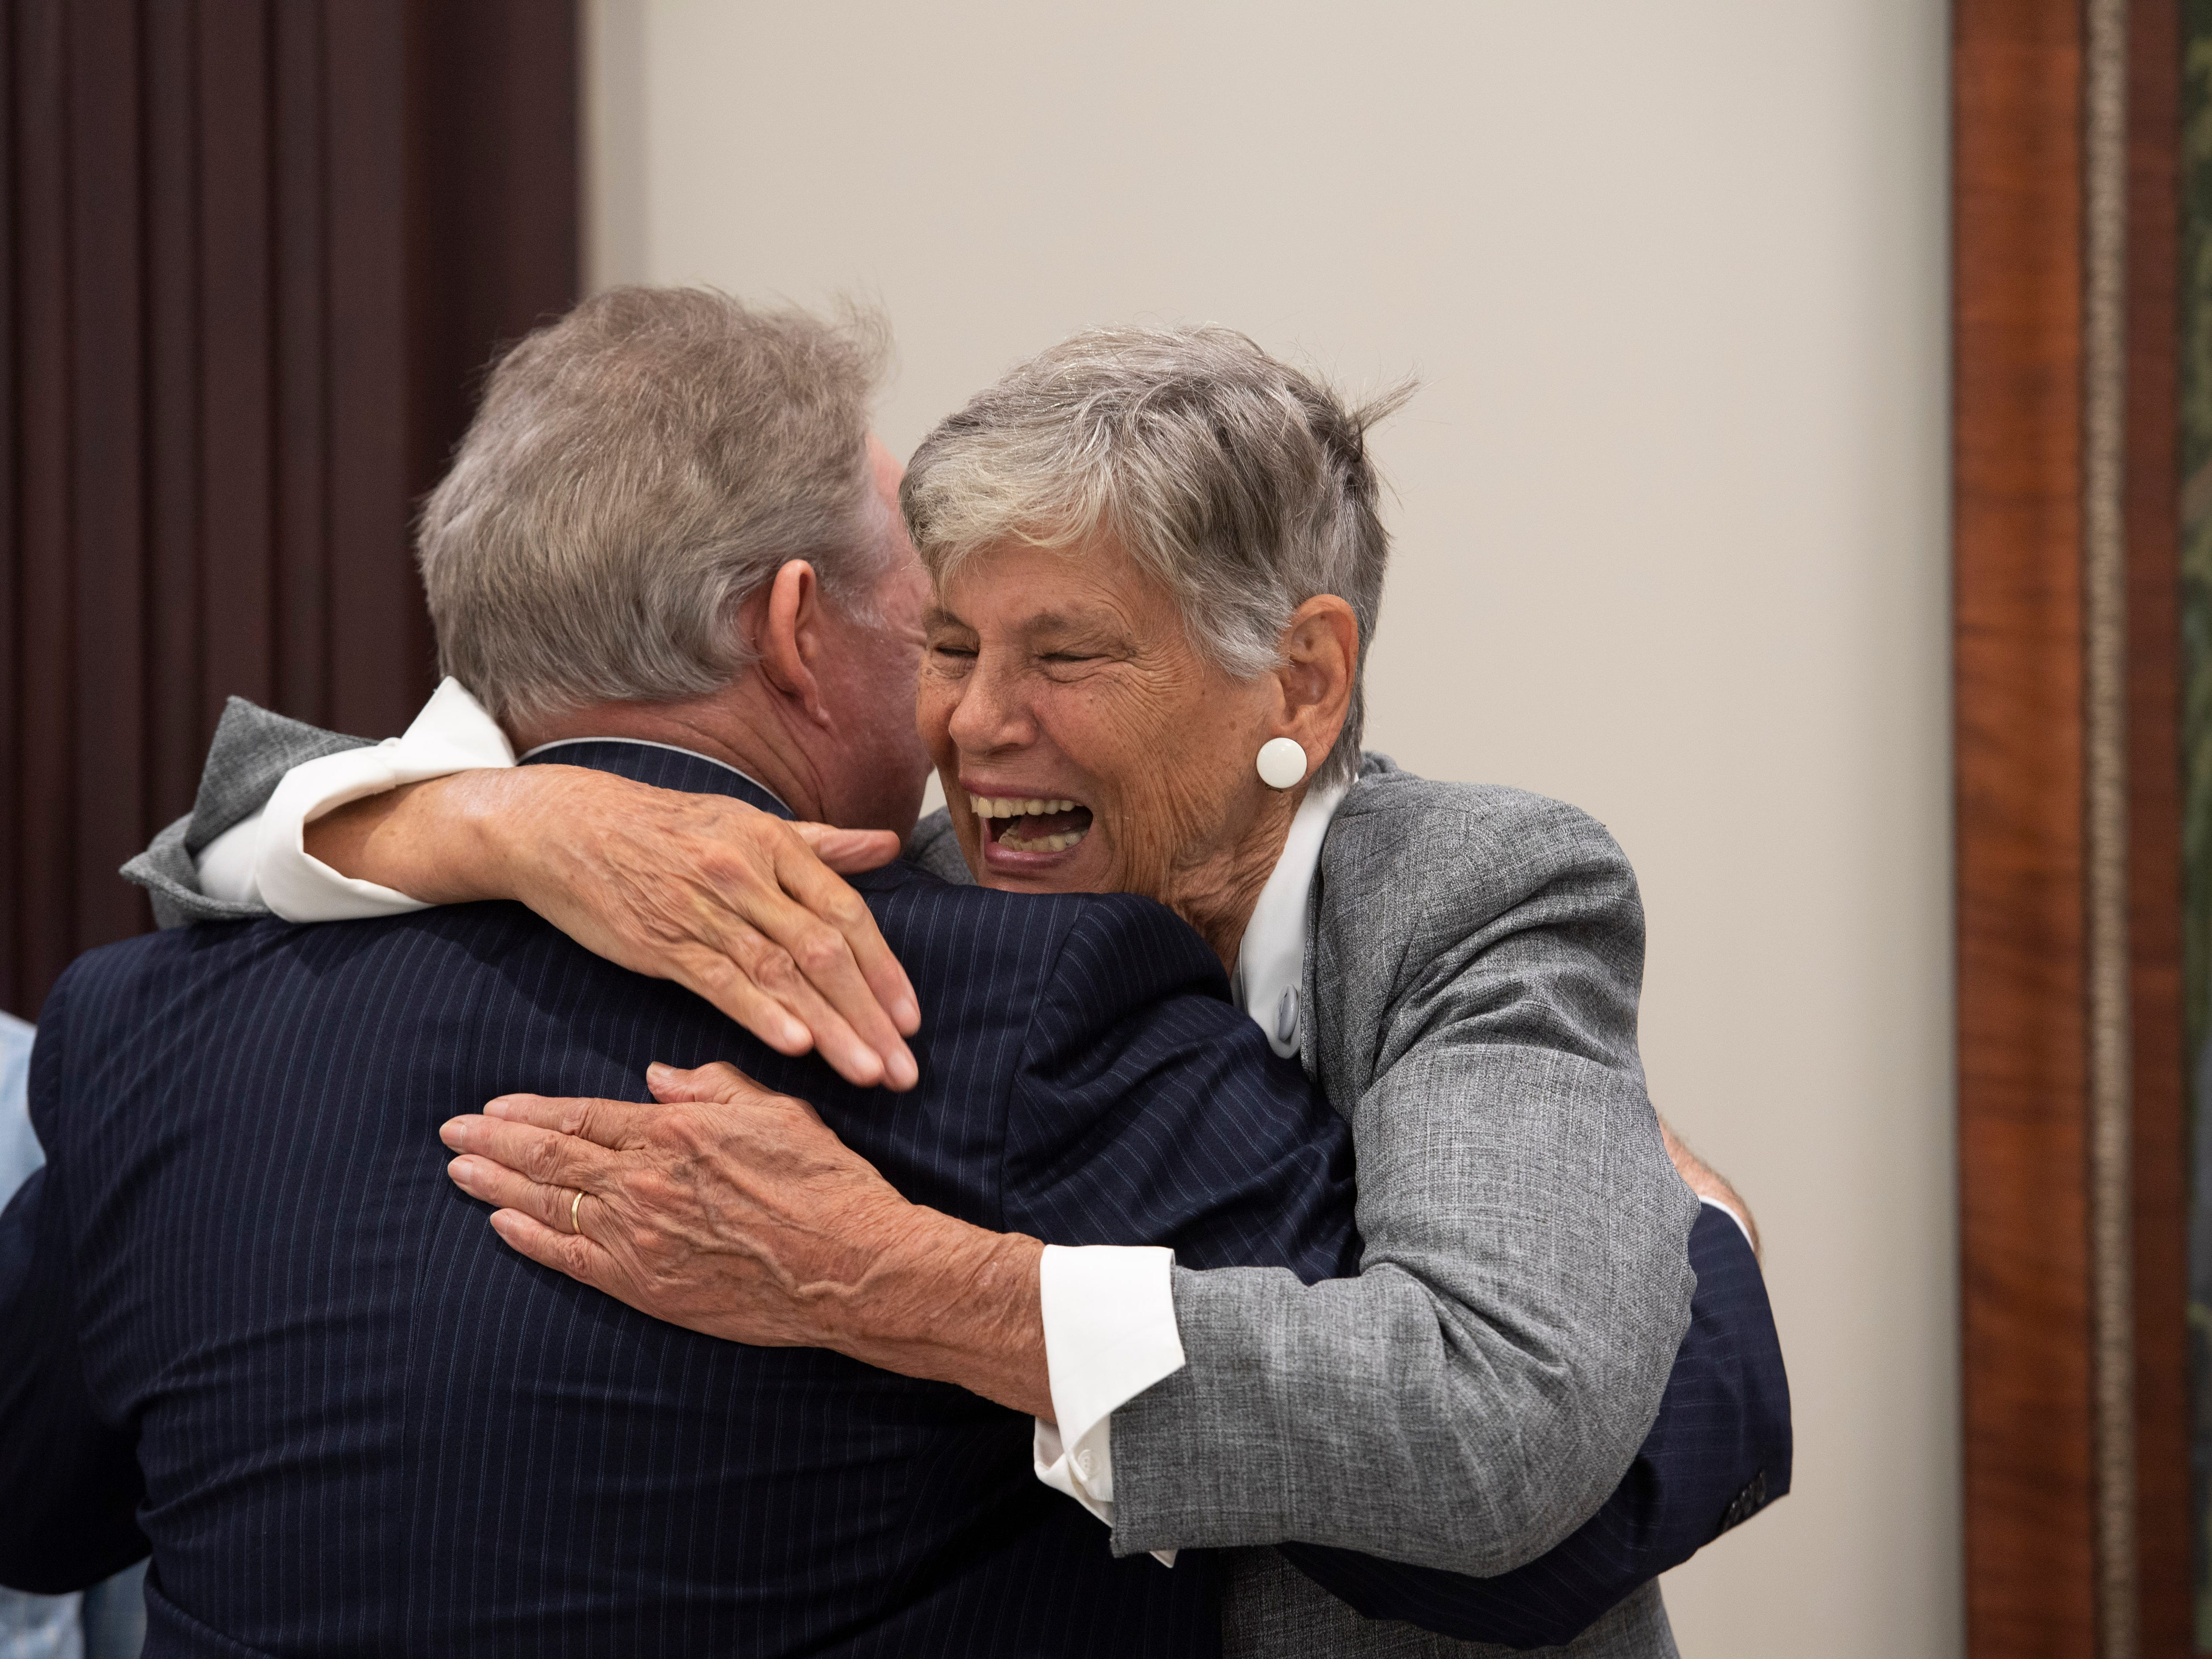 Martin County environmentalist and former commissioner Maggy Hurchalla embraces longtime friend John Milledge, of Fort Lauderdale, ahead of a hearing where Hurchalla appealed a Martin County jury's decision that she owes $4.4 million to rock quarry Lake Point for interfering in their contract with the county and the South Florida Water Management District on Tuesday, March 12, 2019, at the Fourth District Court of Appeal in West Palm Beach. Supporters of Hurchalla filled the courtroom as both sides made their case to three judges.